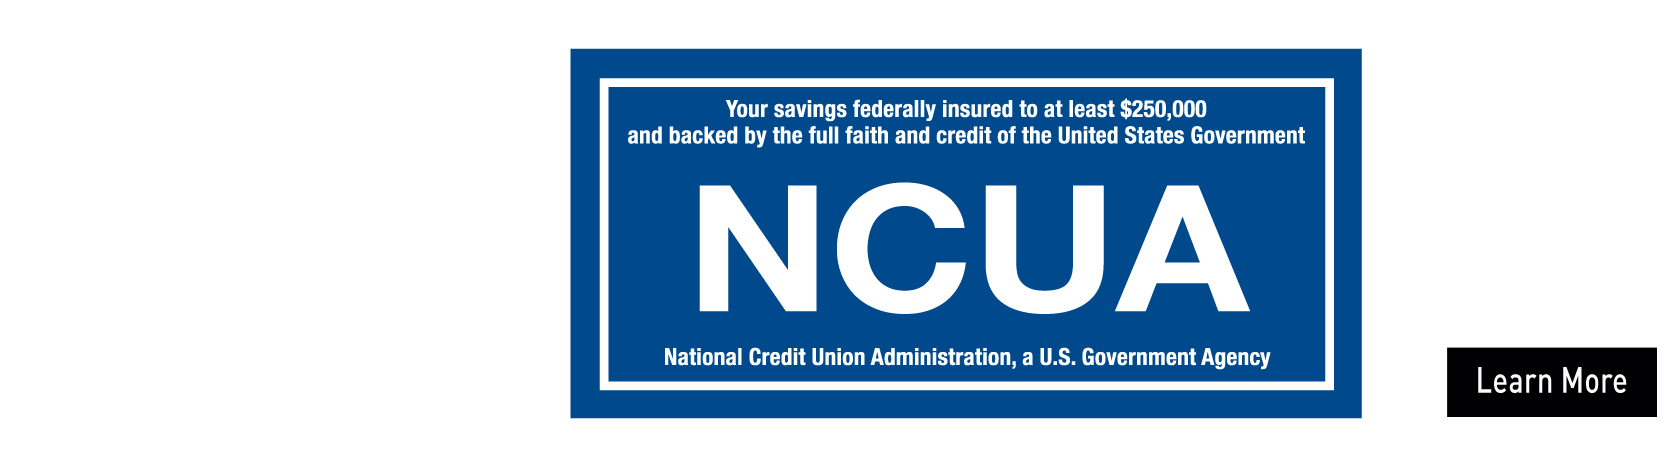 NCUA, National Credit Union Administration, a U.S. Government Agency